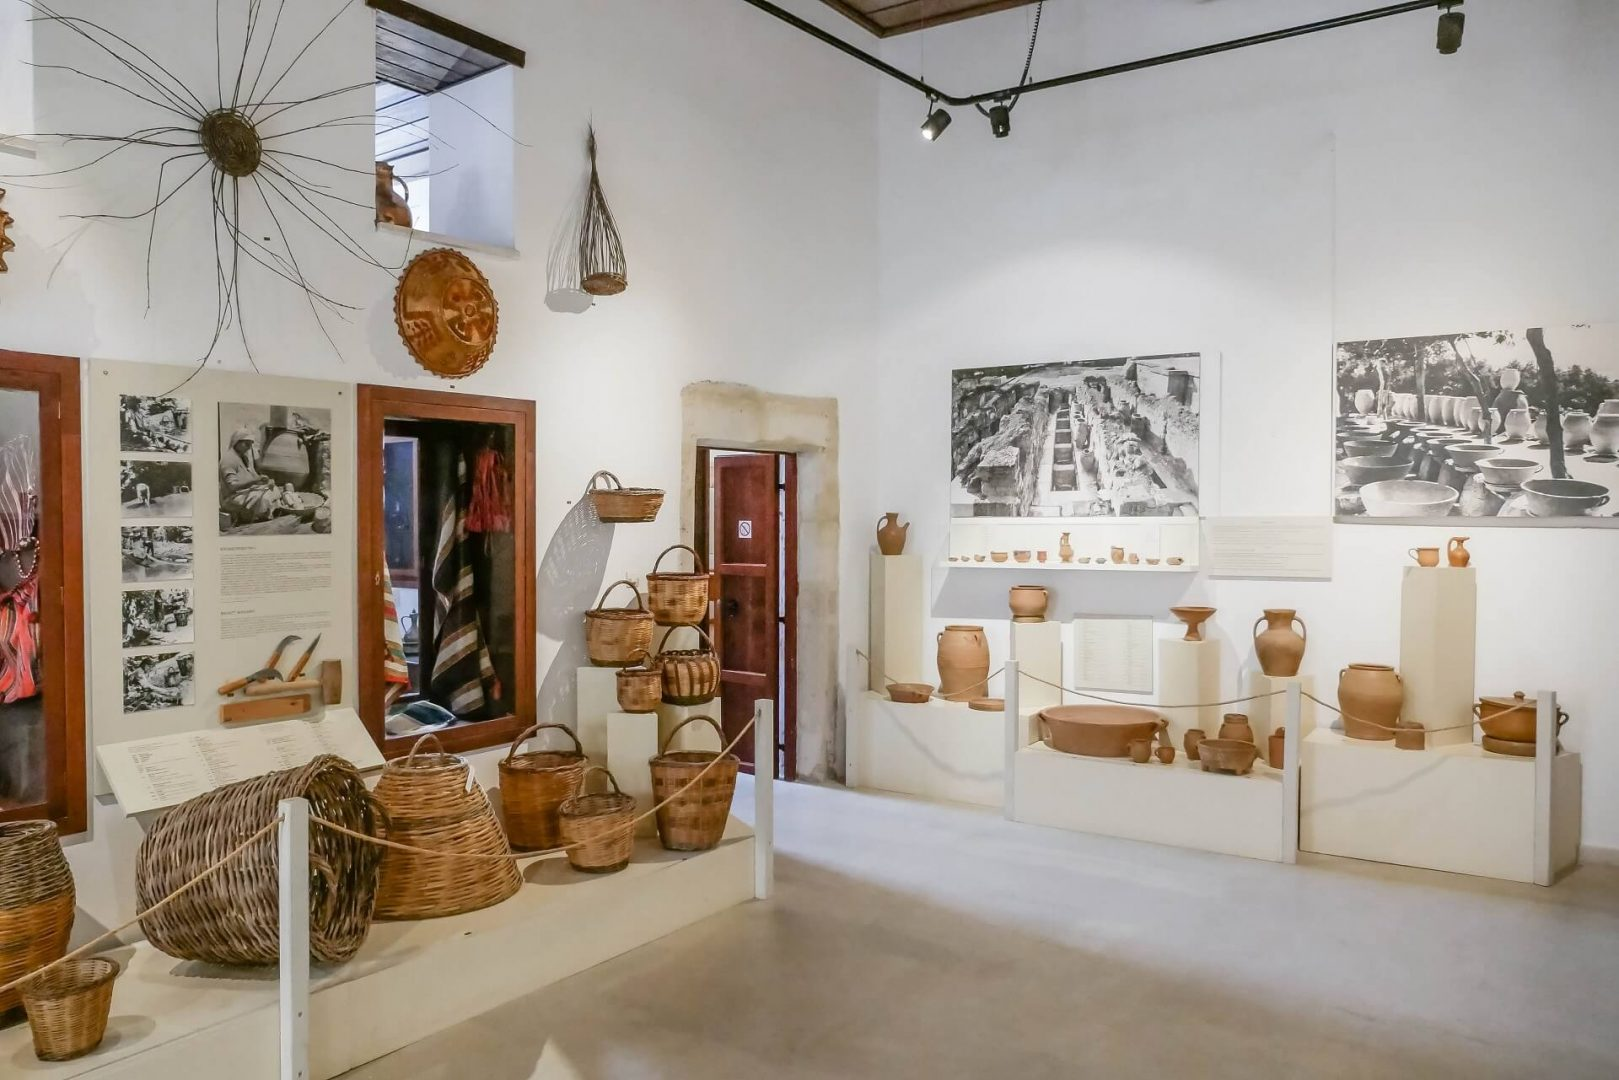 History and Folk Art Museum, Rethymno, Greece